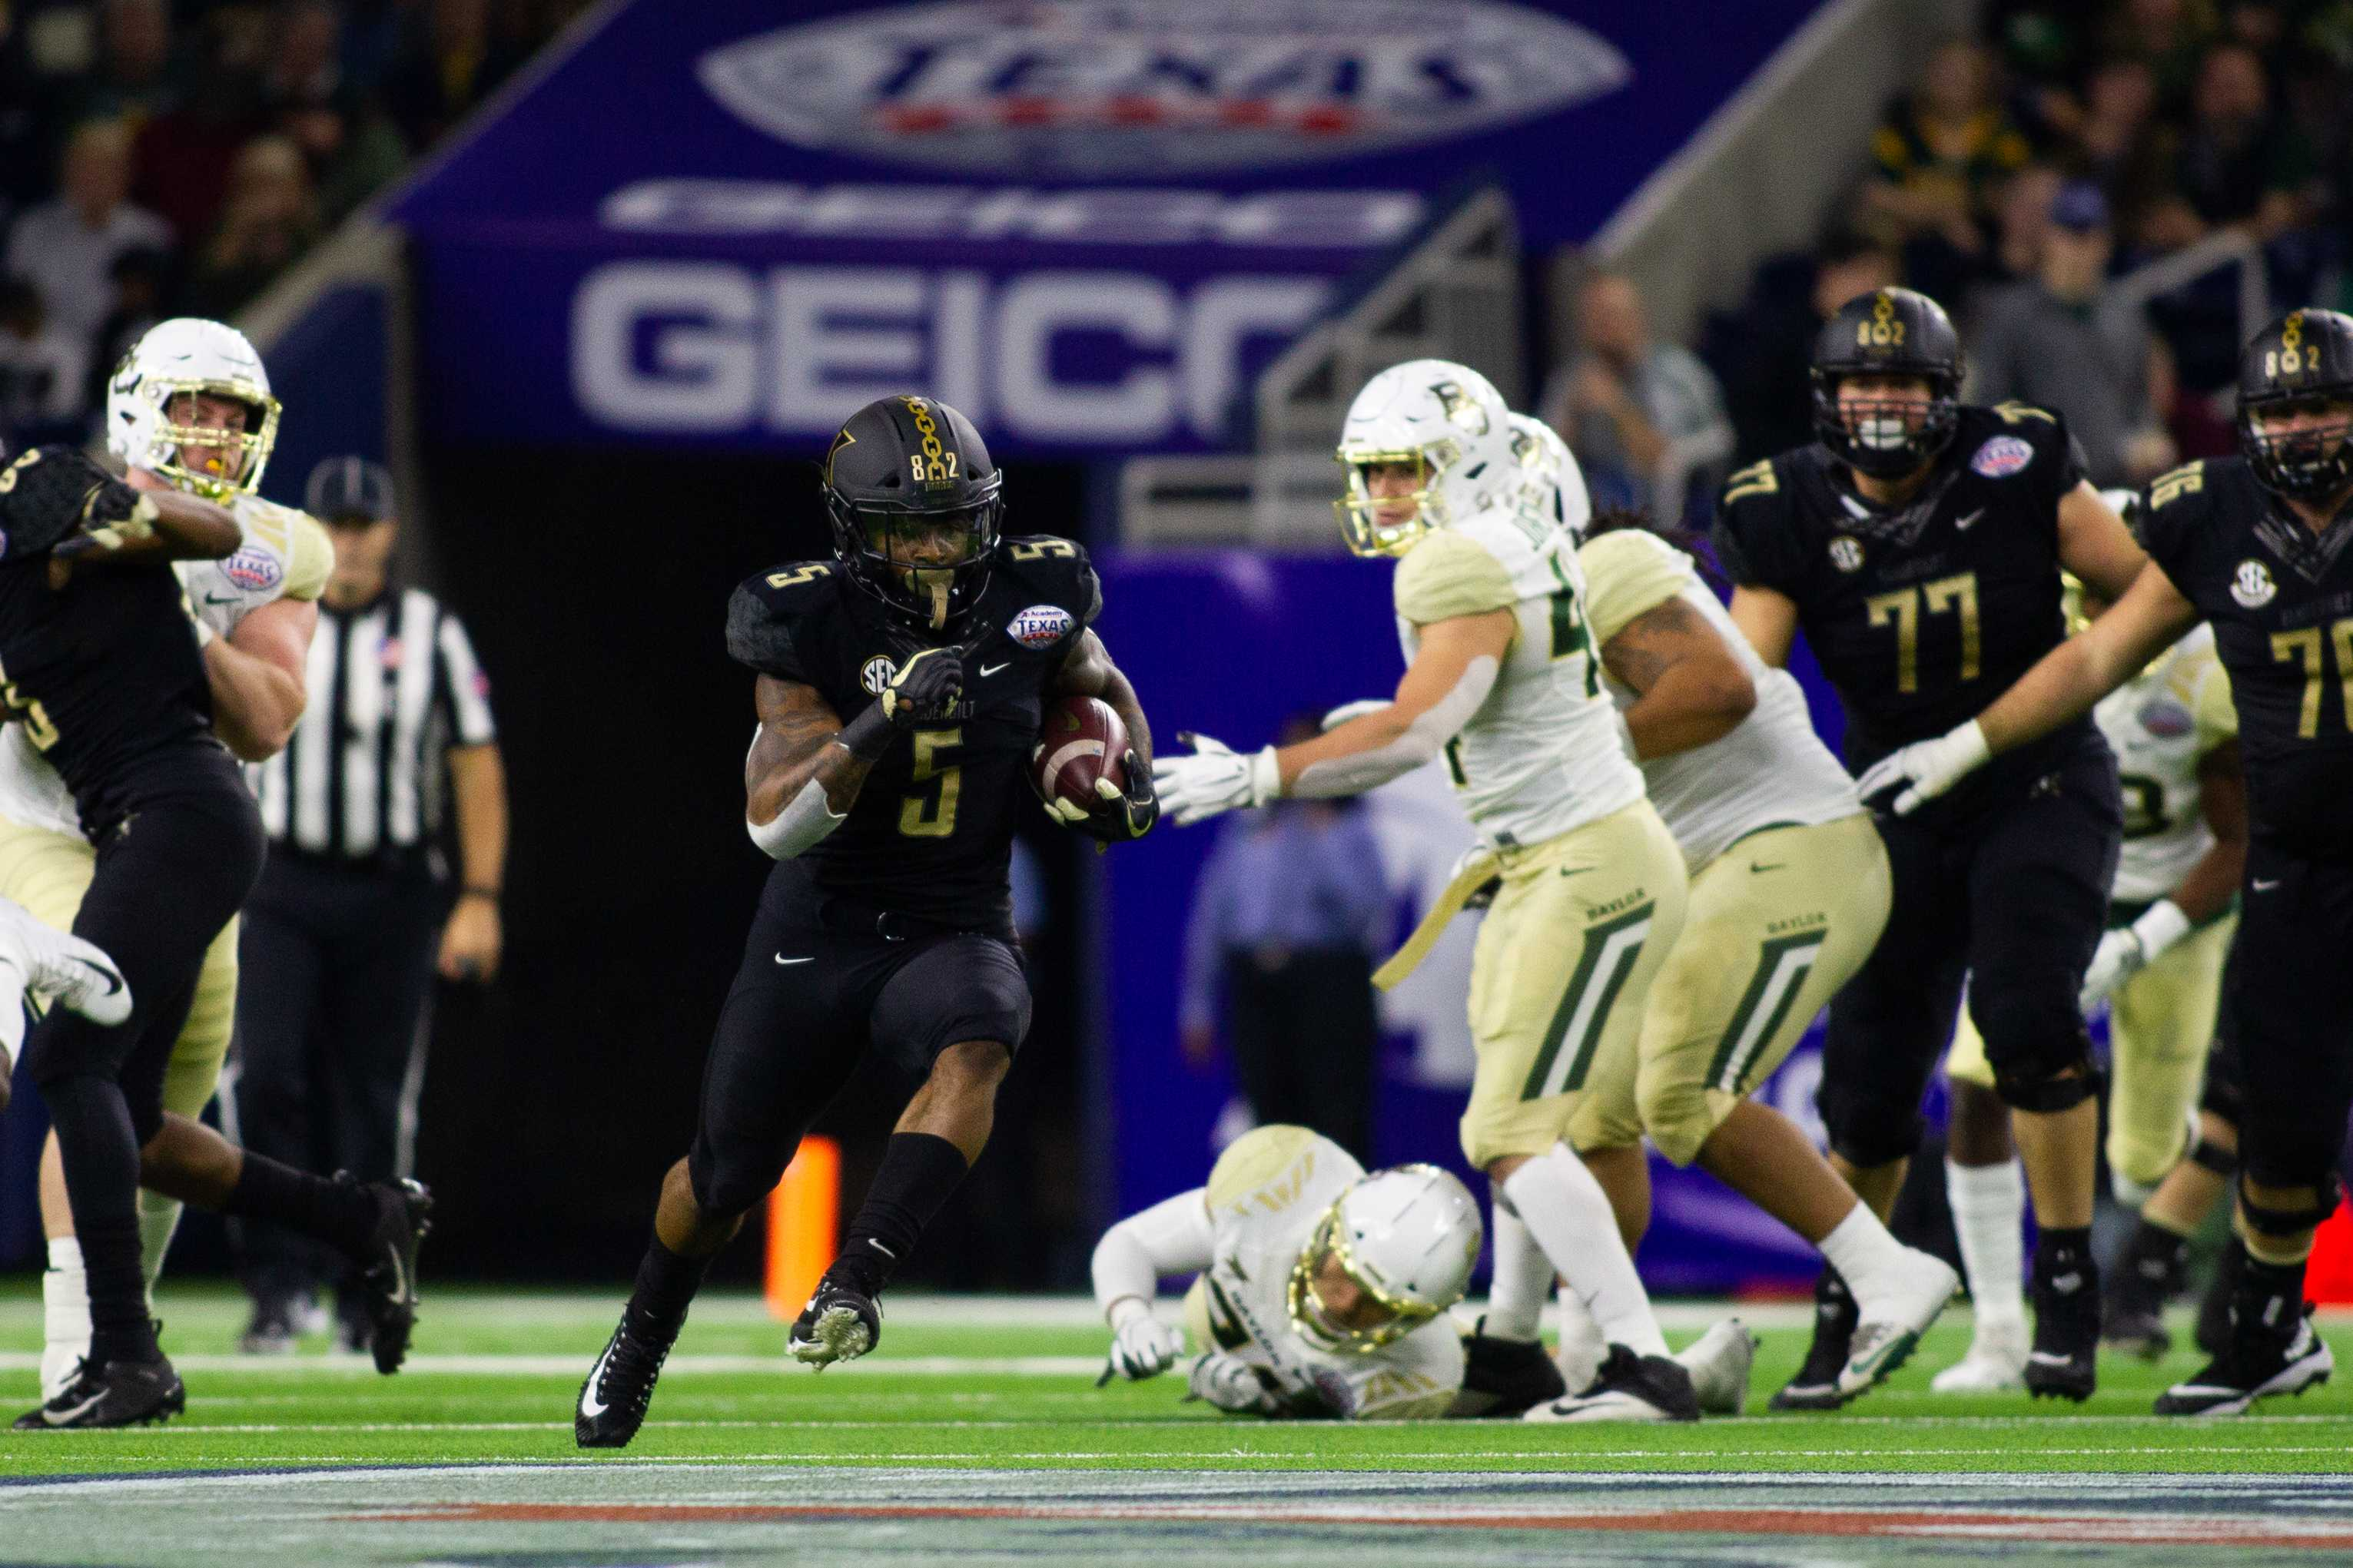 Ke'Shawn Vaughn scrambles for a touchdown in Vanderbilt's 45-38 loss to Baylor in the Texas Bowl.  (Photo by Hunter Long.)